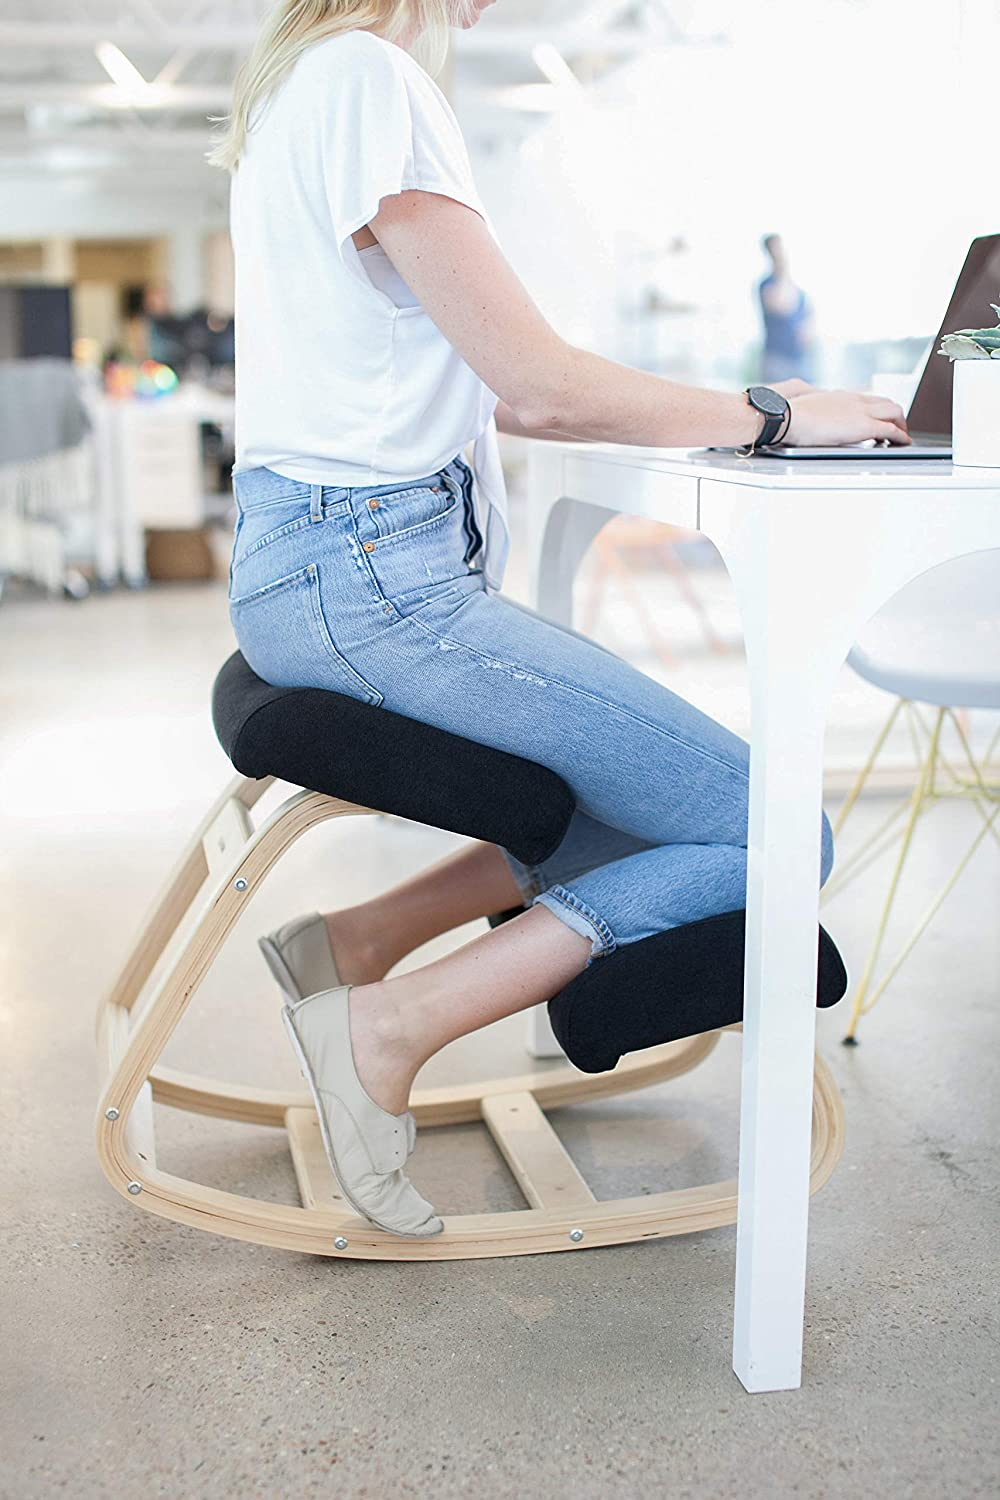 Cool Sleekform Kneeling Chair Rocking Ergonomic Wood Knee Stool For Office Home Posture Correcting For Bad Backs Neck Pain Spine Tension Relief Unemploymentrelief Wooden Chair Designs For Living Room Unemploymentrelieforg